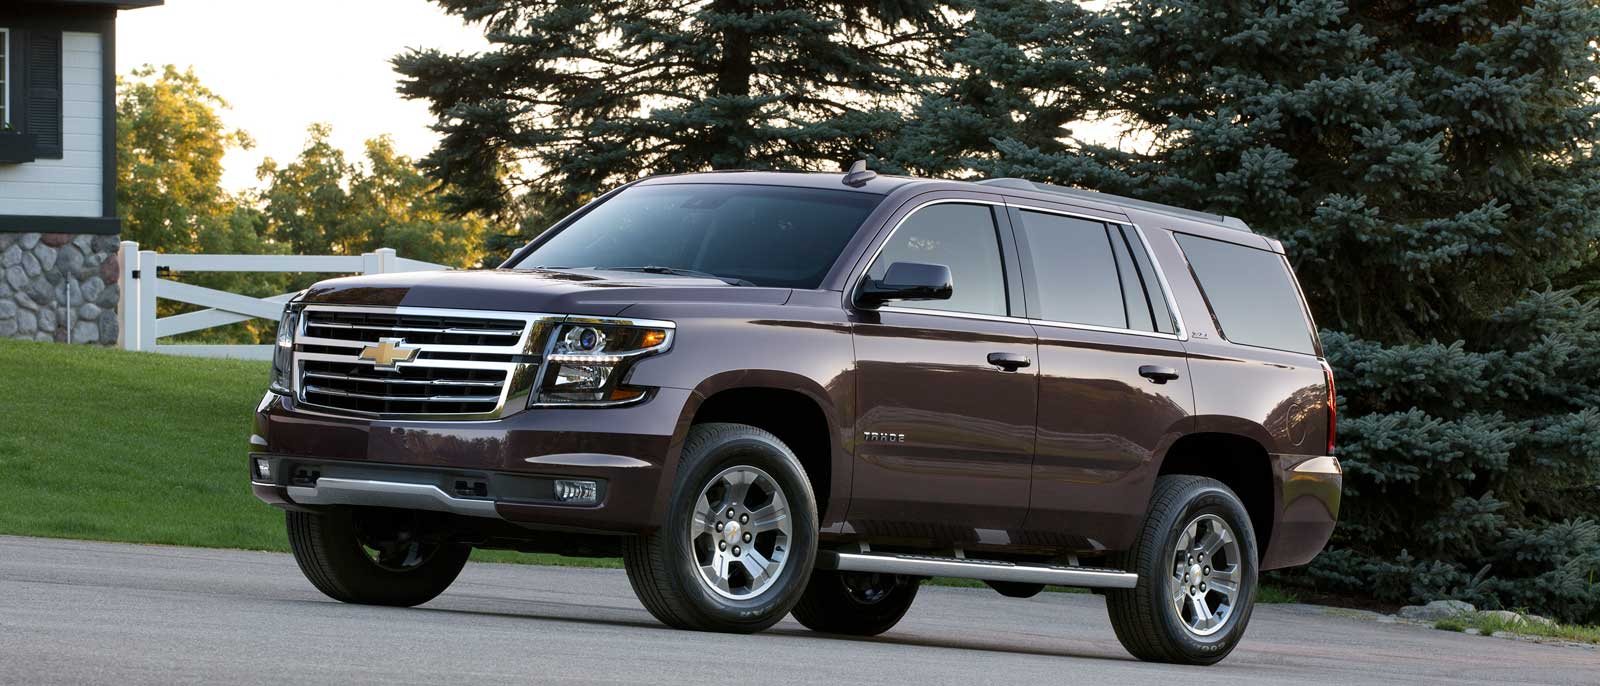 2016 chevrolet tahoe schenectady troy depaula chevrolet. Black Bedroom Furniture Sets. Home Design Ideas